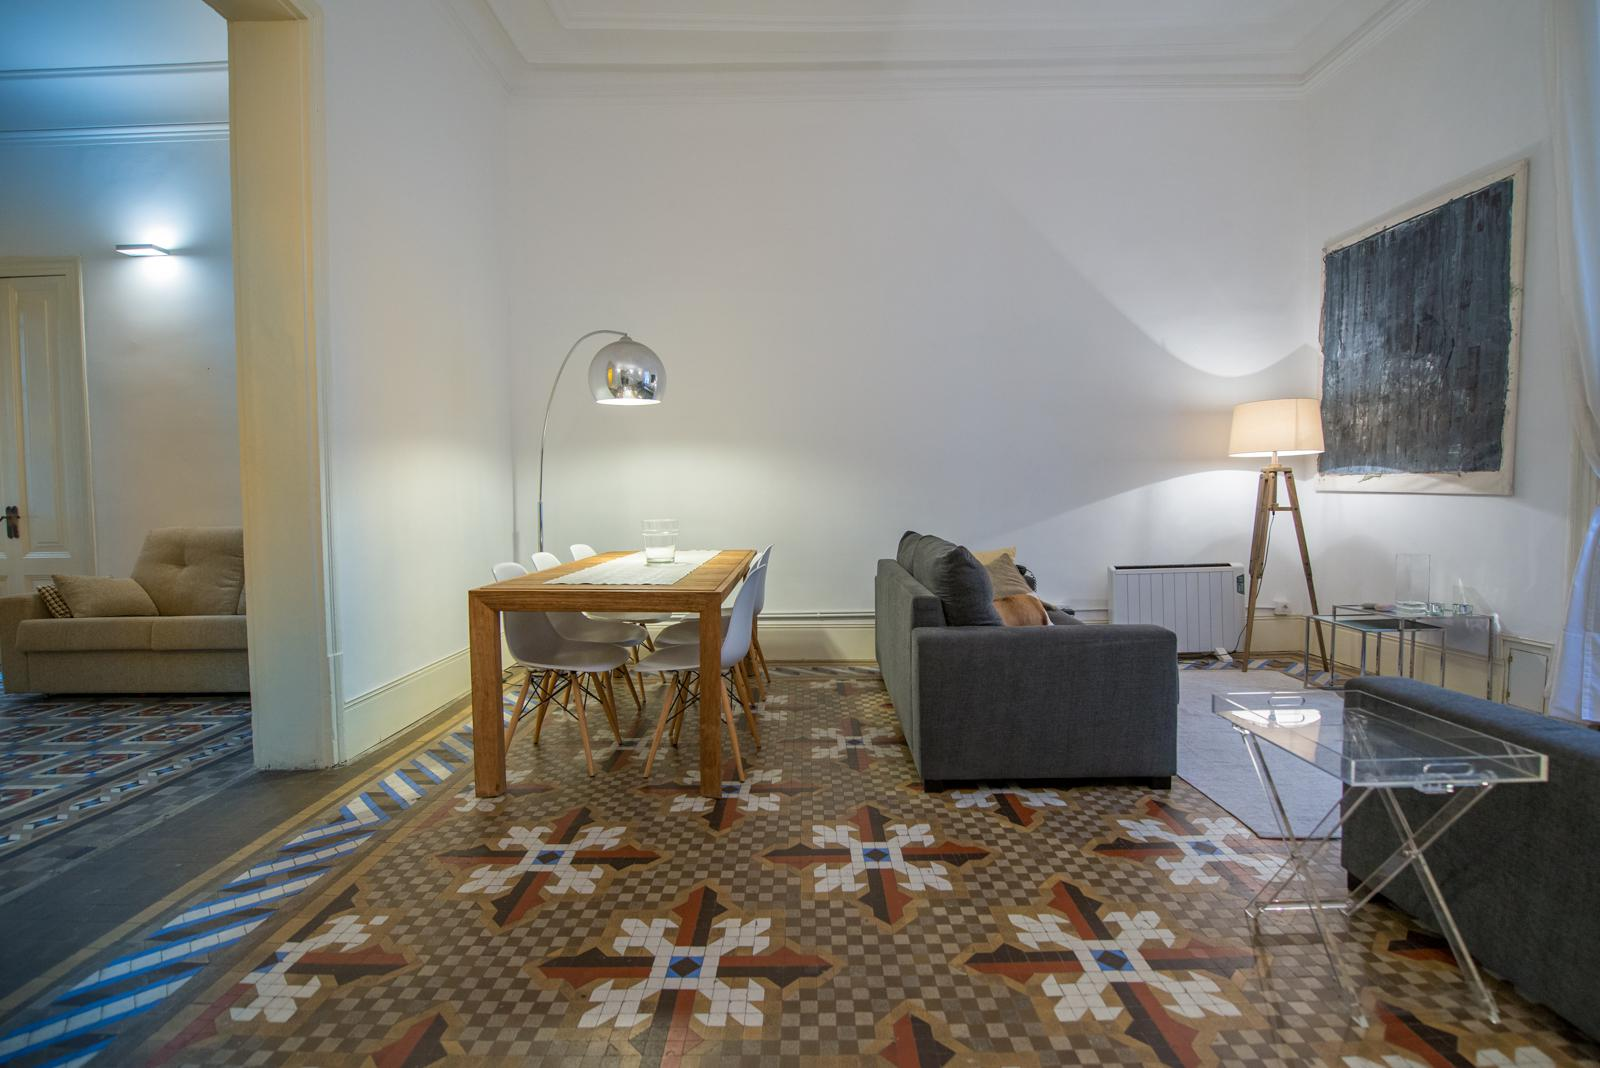 142024 Apartment for sale in Ciutat Vella, Gothic Quarter 7